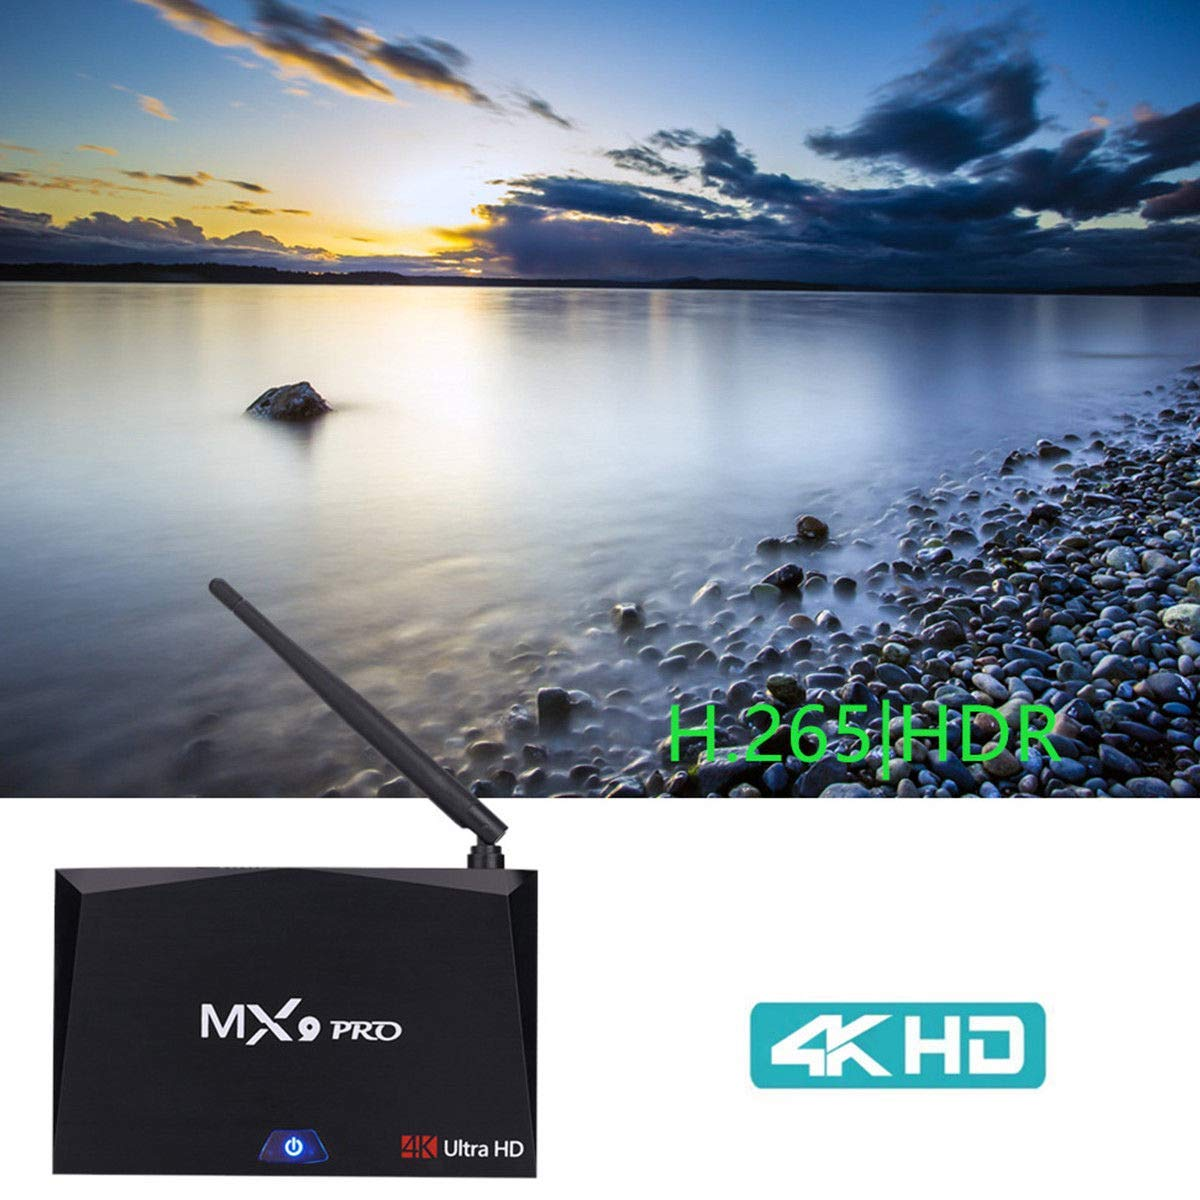 Mocei MX9 Pro 16G 32GB ROM Smart Android 7.1 TV Box RK3328 Quad Core WiFi BT4.1 NM AU 2G+16G